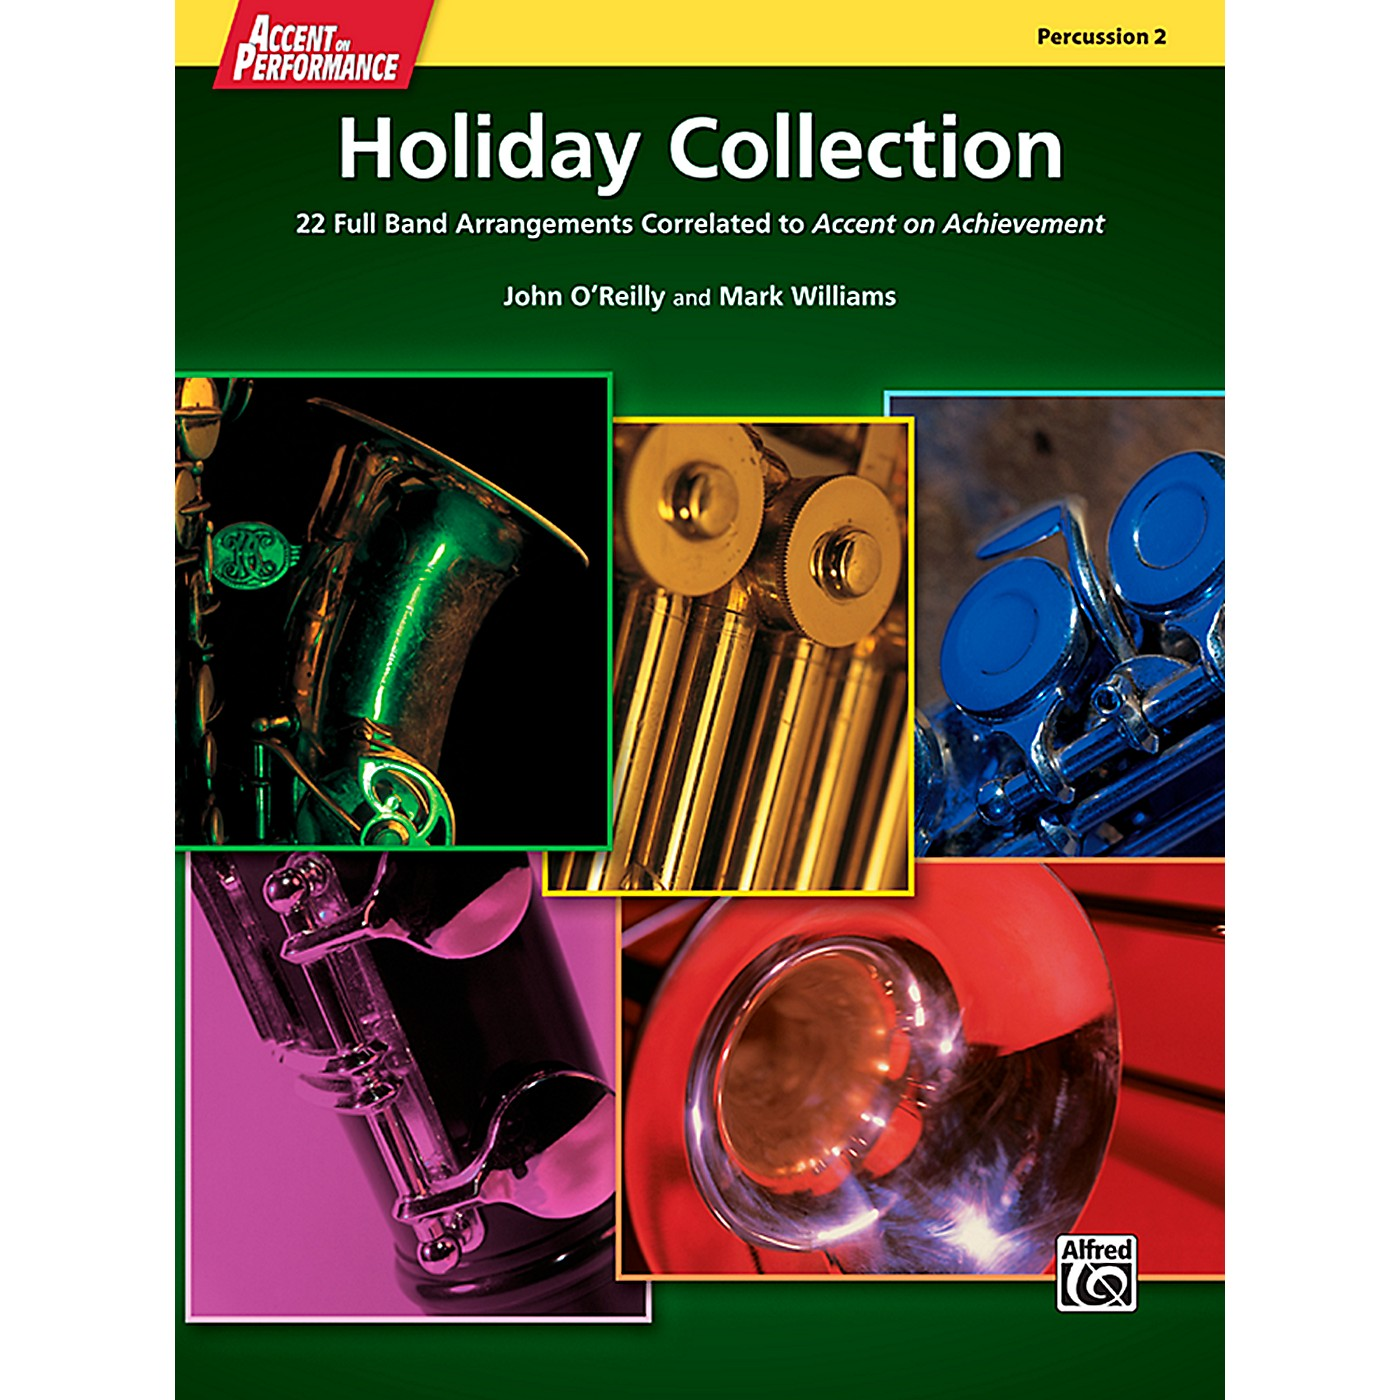 Alfred Accent on Performance Holiday Collection Percussion 2 Book thumbnail